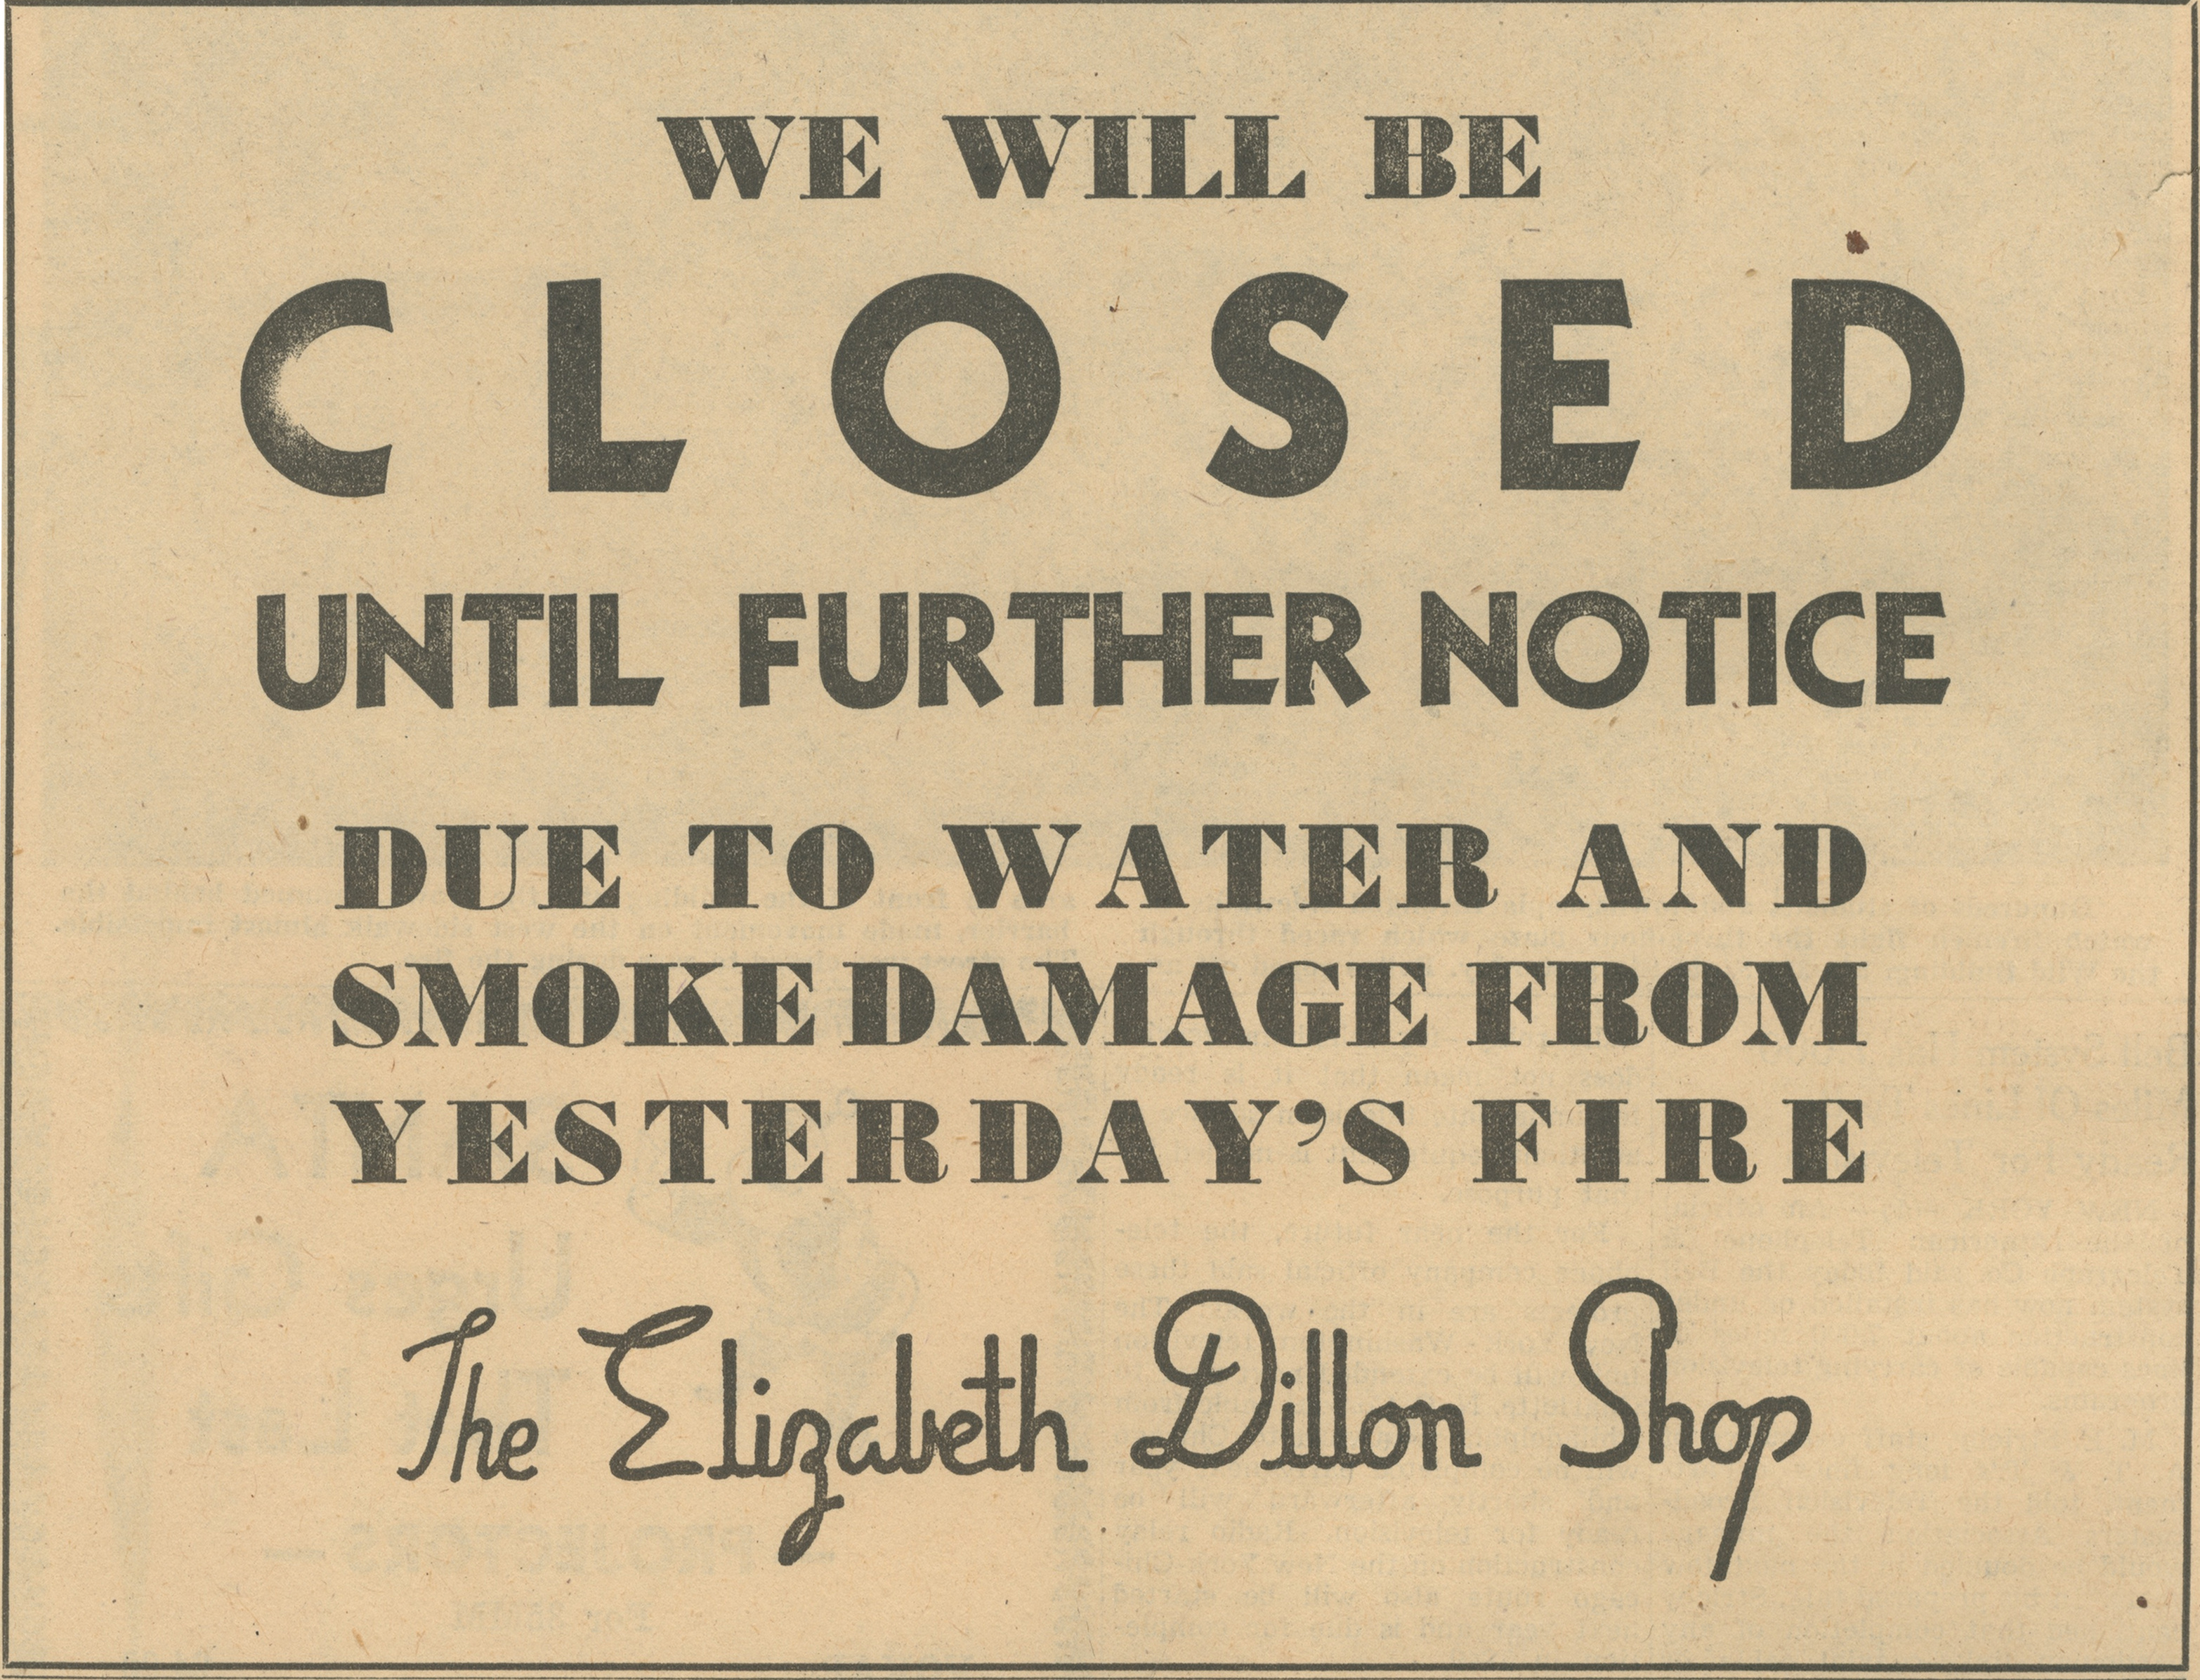 We Will Be Closed - Elizabeth Dillon Shop image